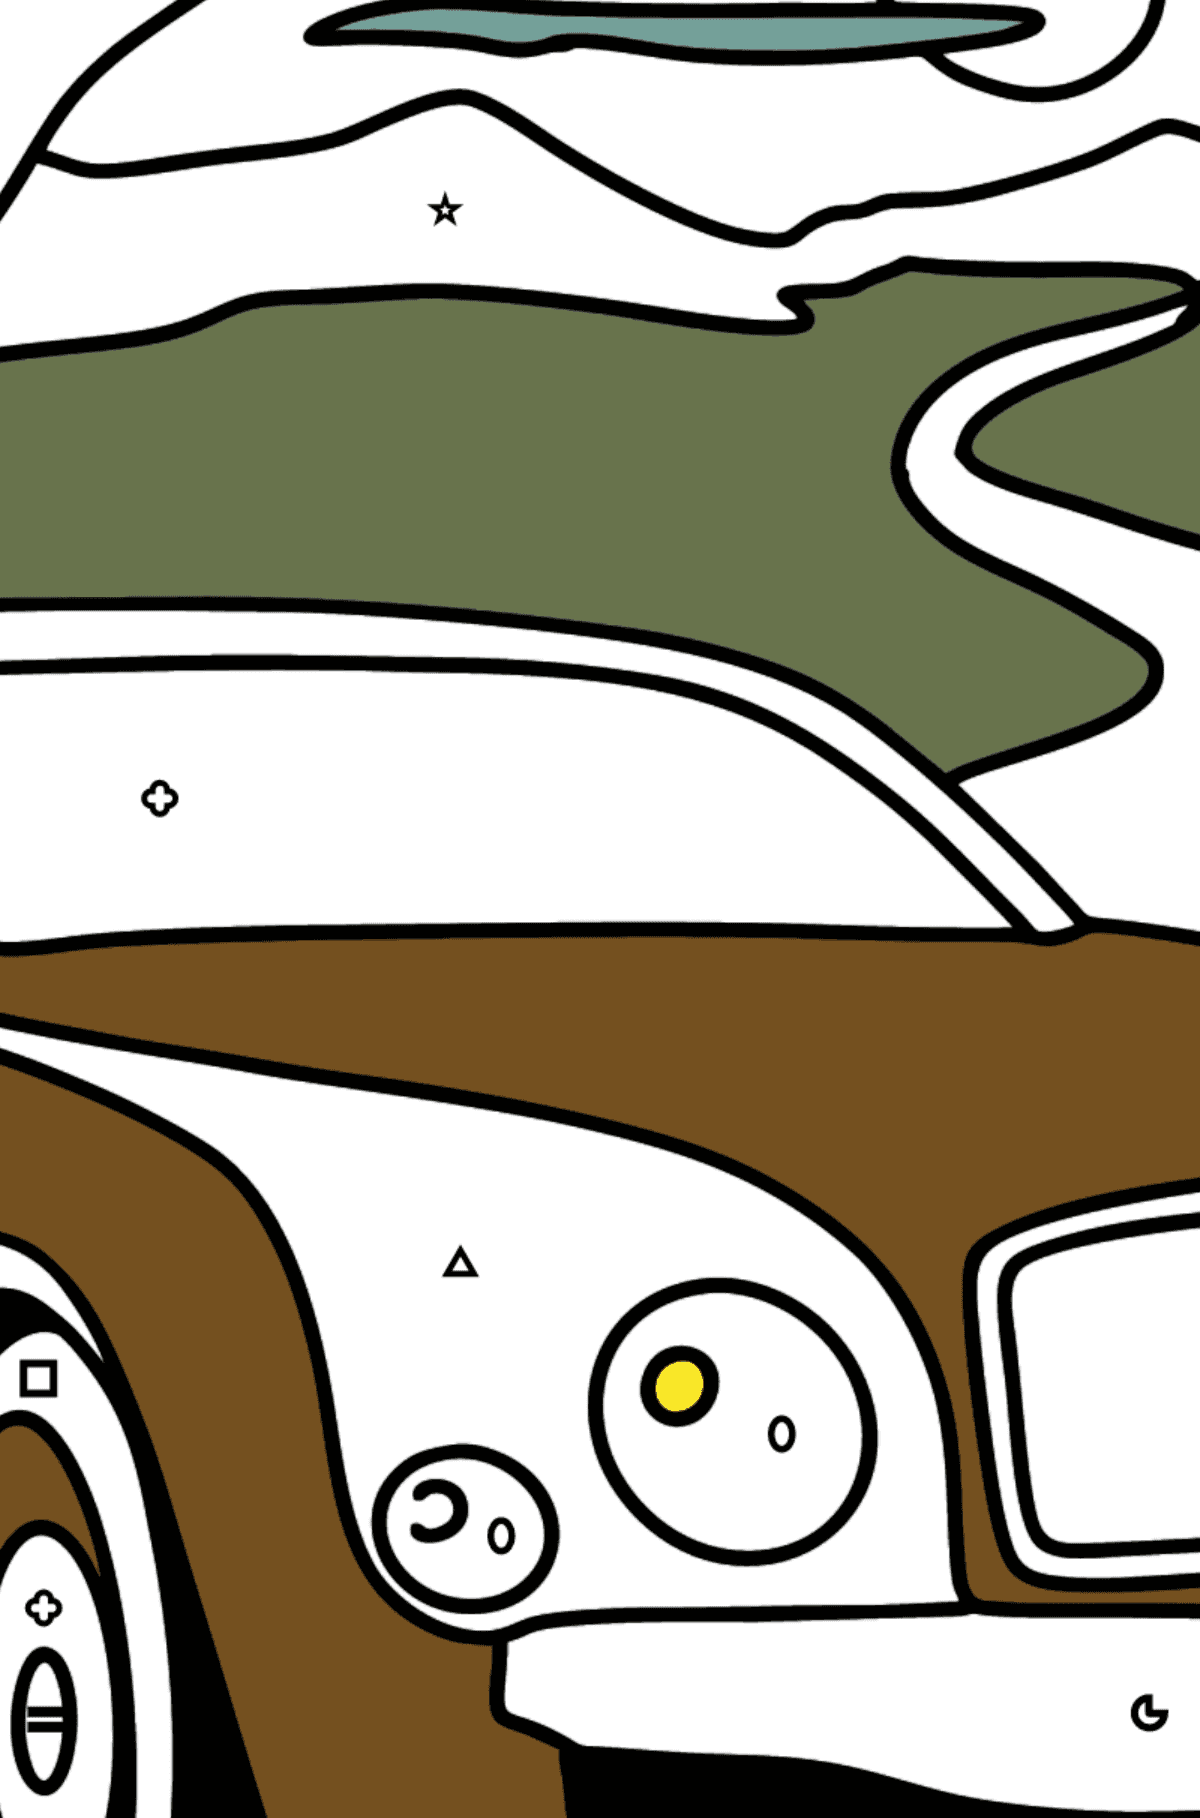 Bentley Mulsanne Car coloring page - Coloring by Symbols and Geometric Shapes for Kids